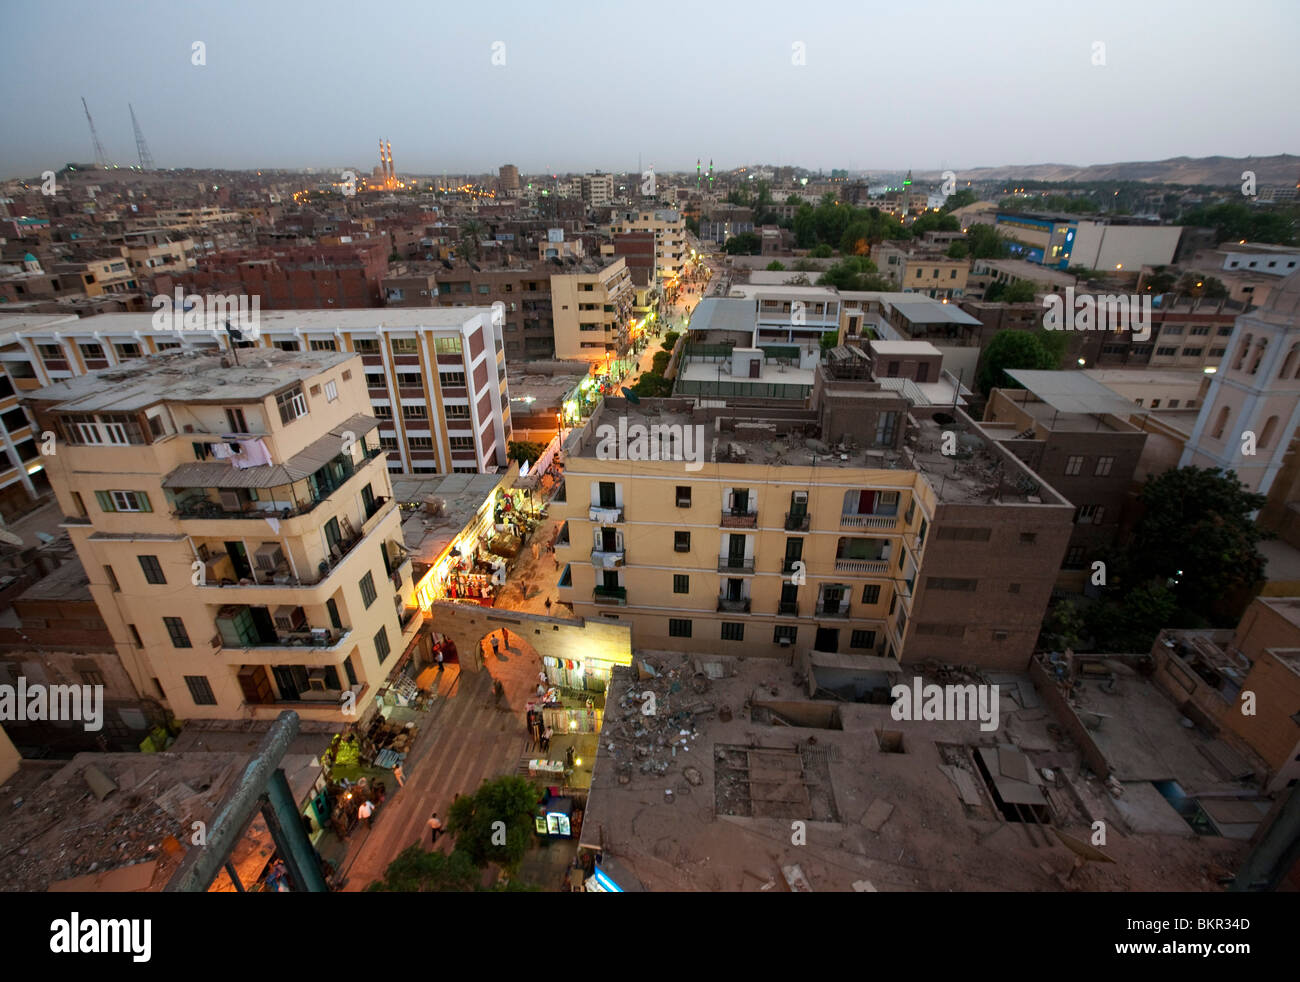 Egypt, Aswan  The main souq street in Aswan lights up and